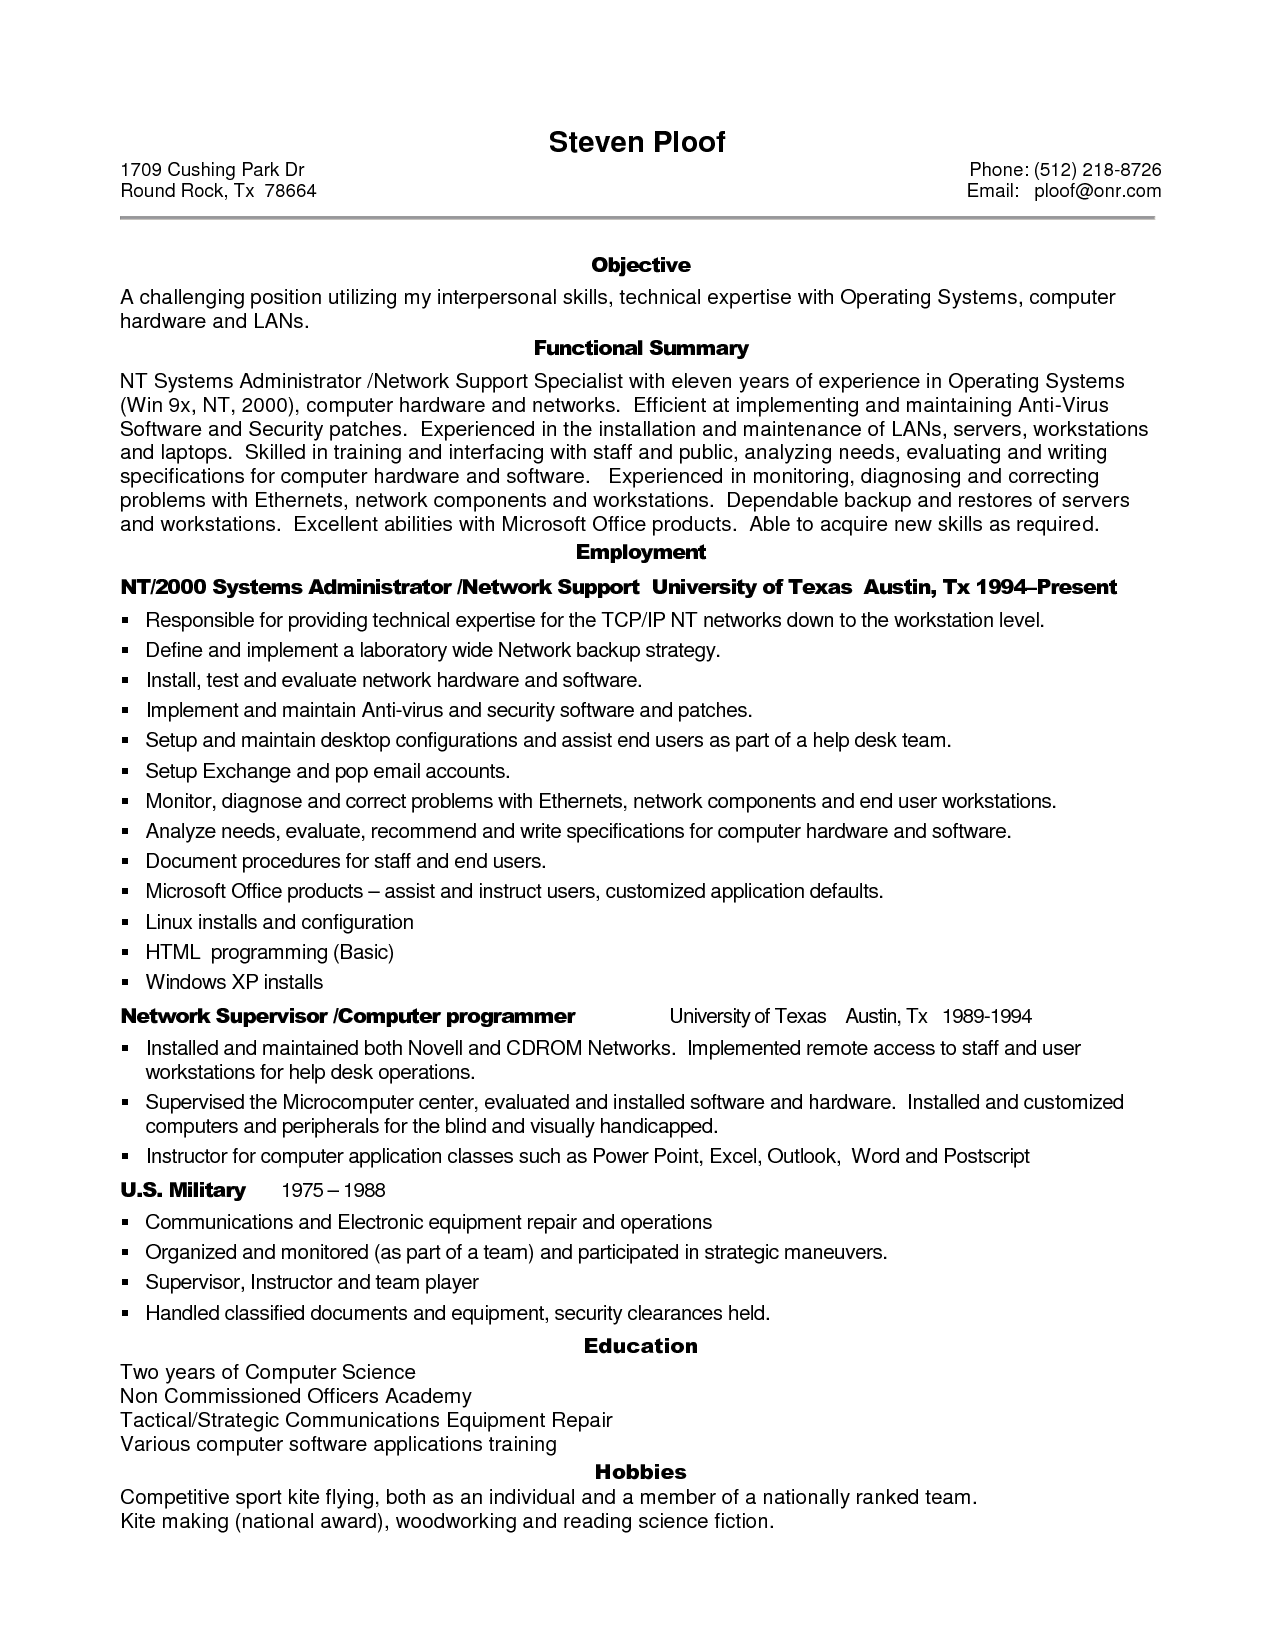 Resume Professional Resume Tips sample resume for experienced it professional tips for